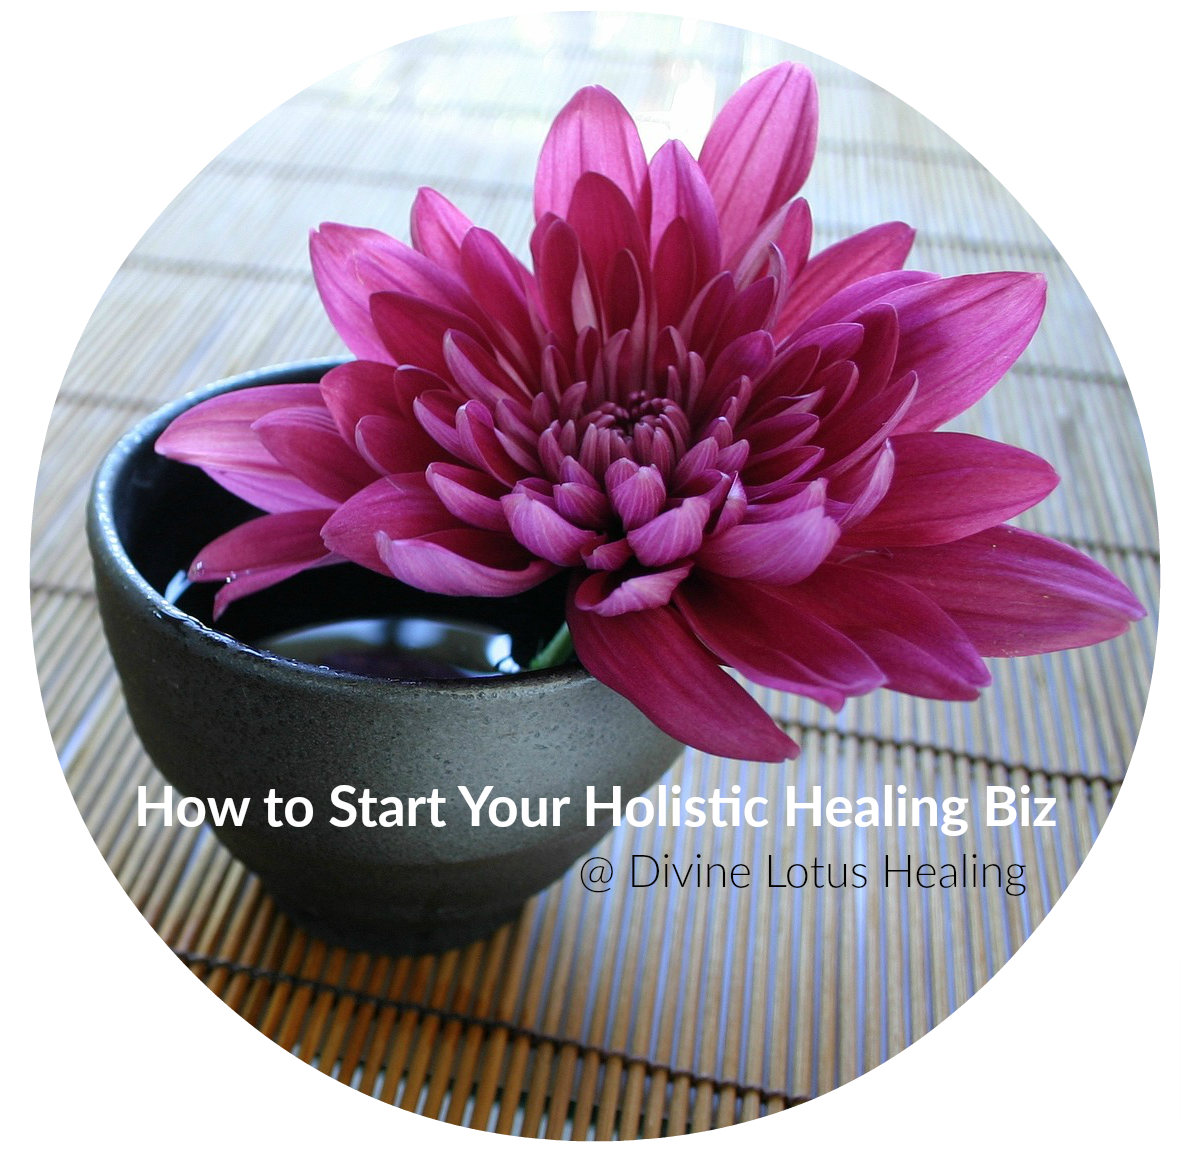 How to Start Your Holistic Healing Biz at Divine Lotus Healing